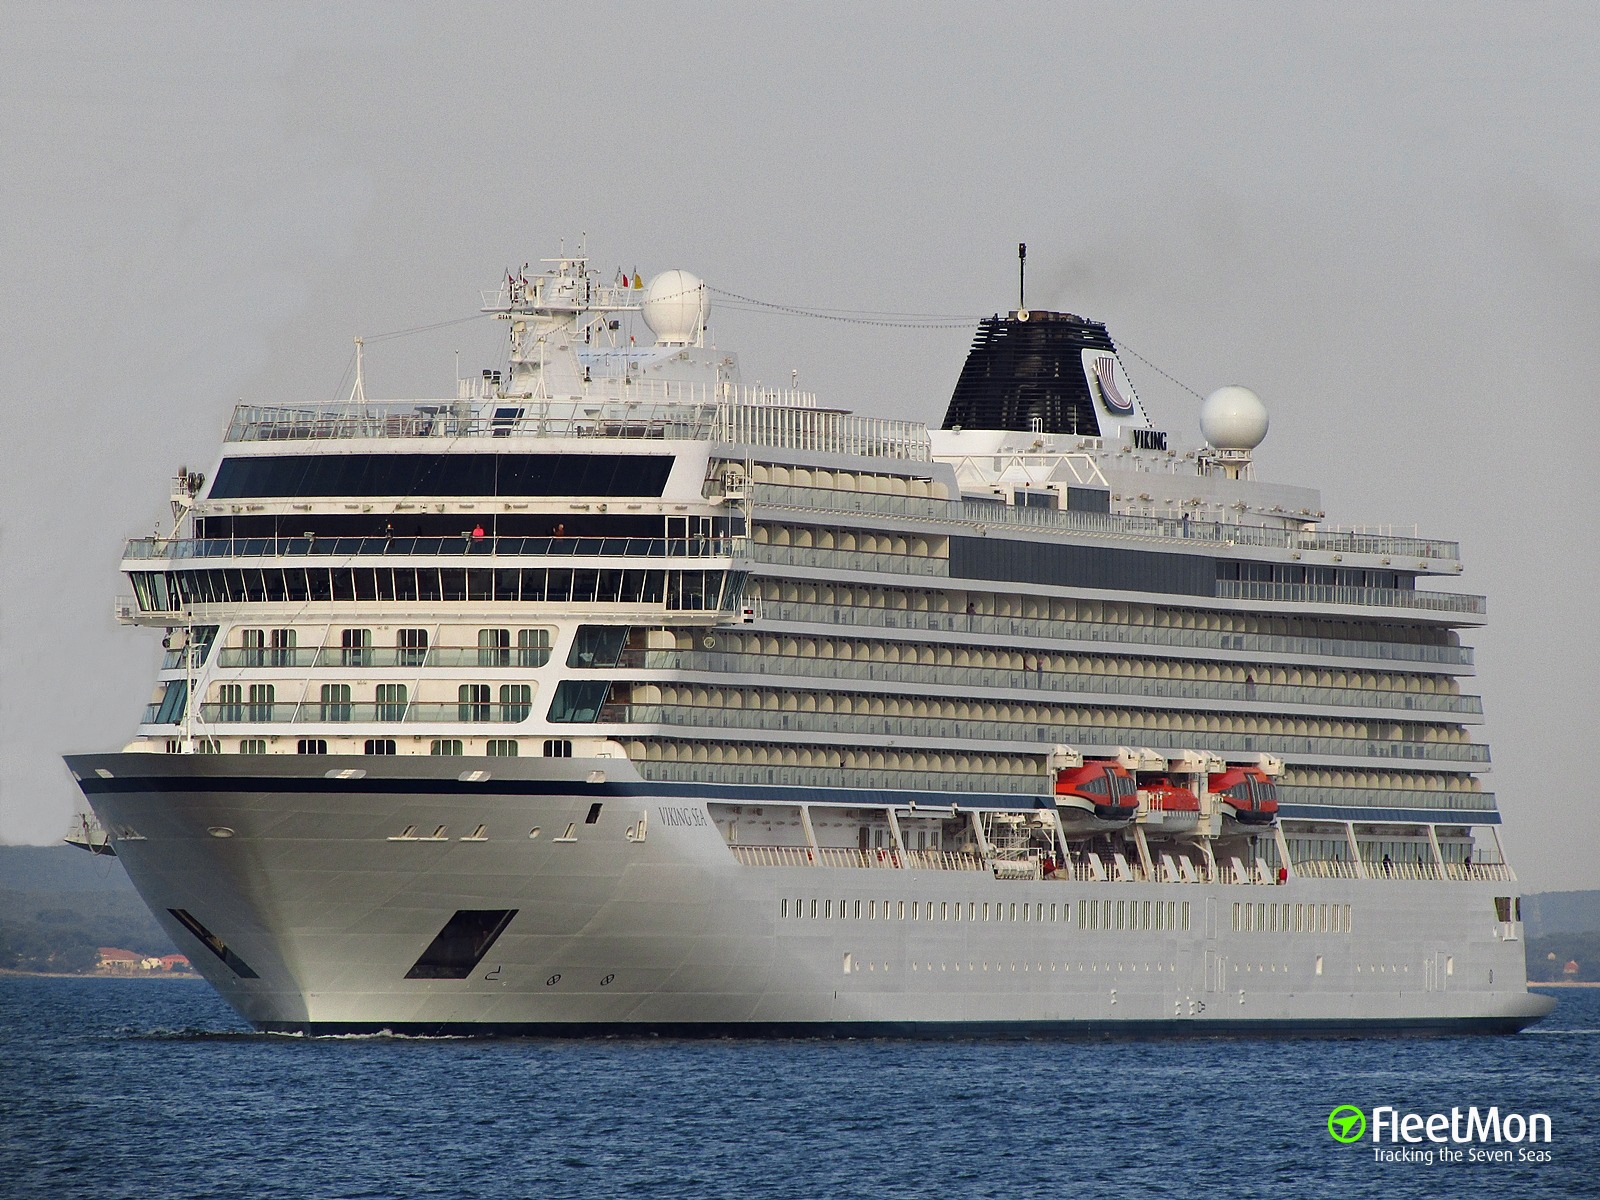 VIKING SEA cruise interrupted by engine problem